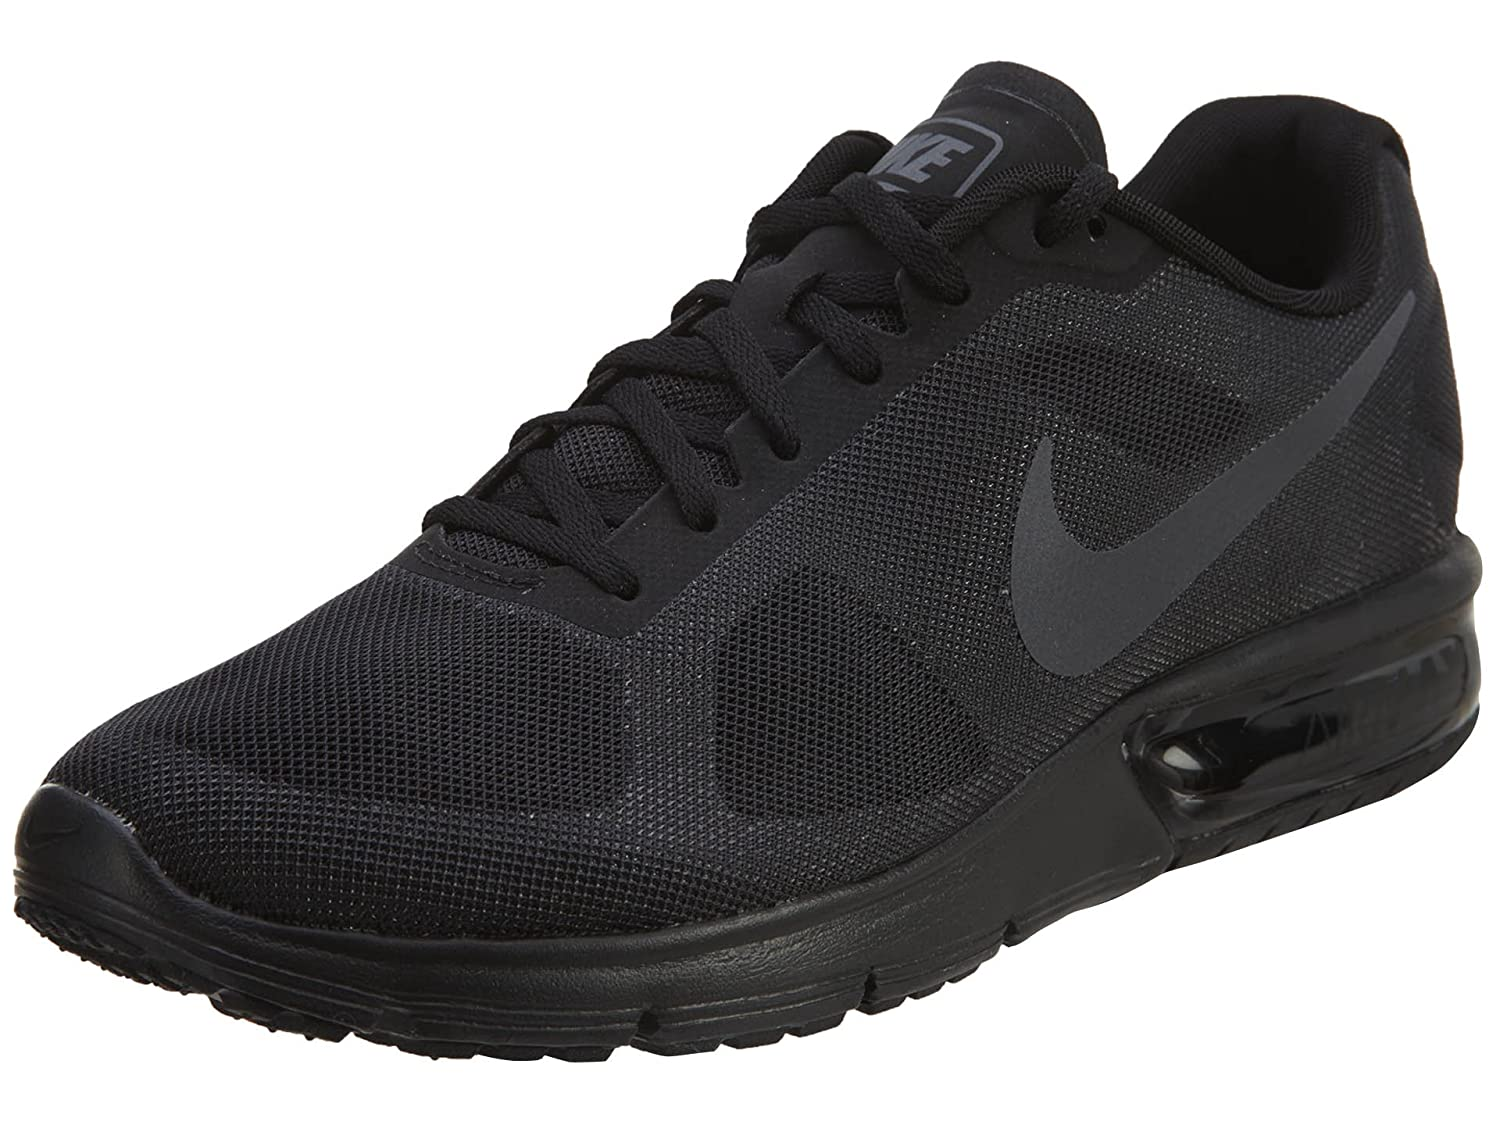 NIKE Men's Air Max Sequent 2 Running Shoe B00709M29Q 11.5 D(M) US|Black/Dark Grey